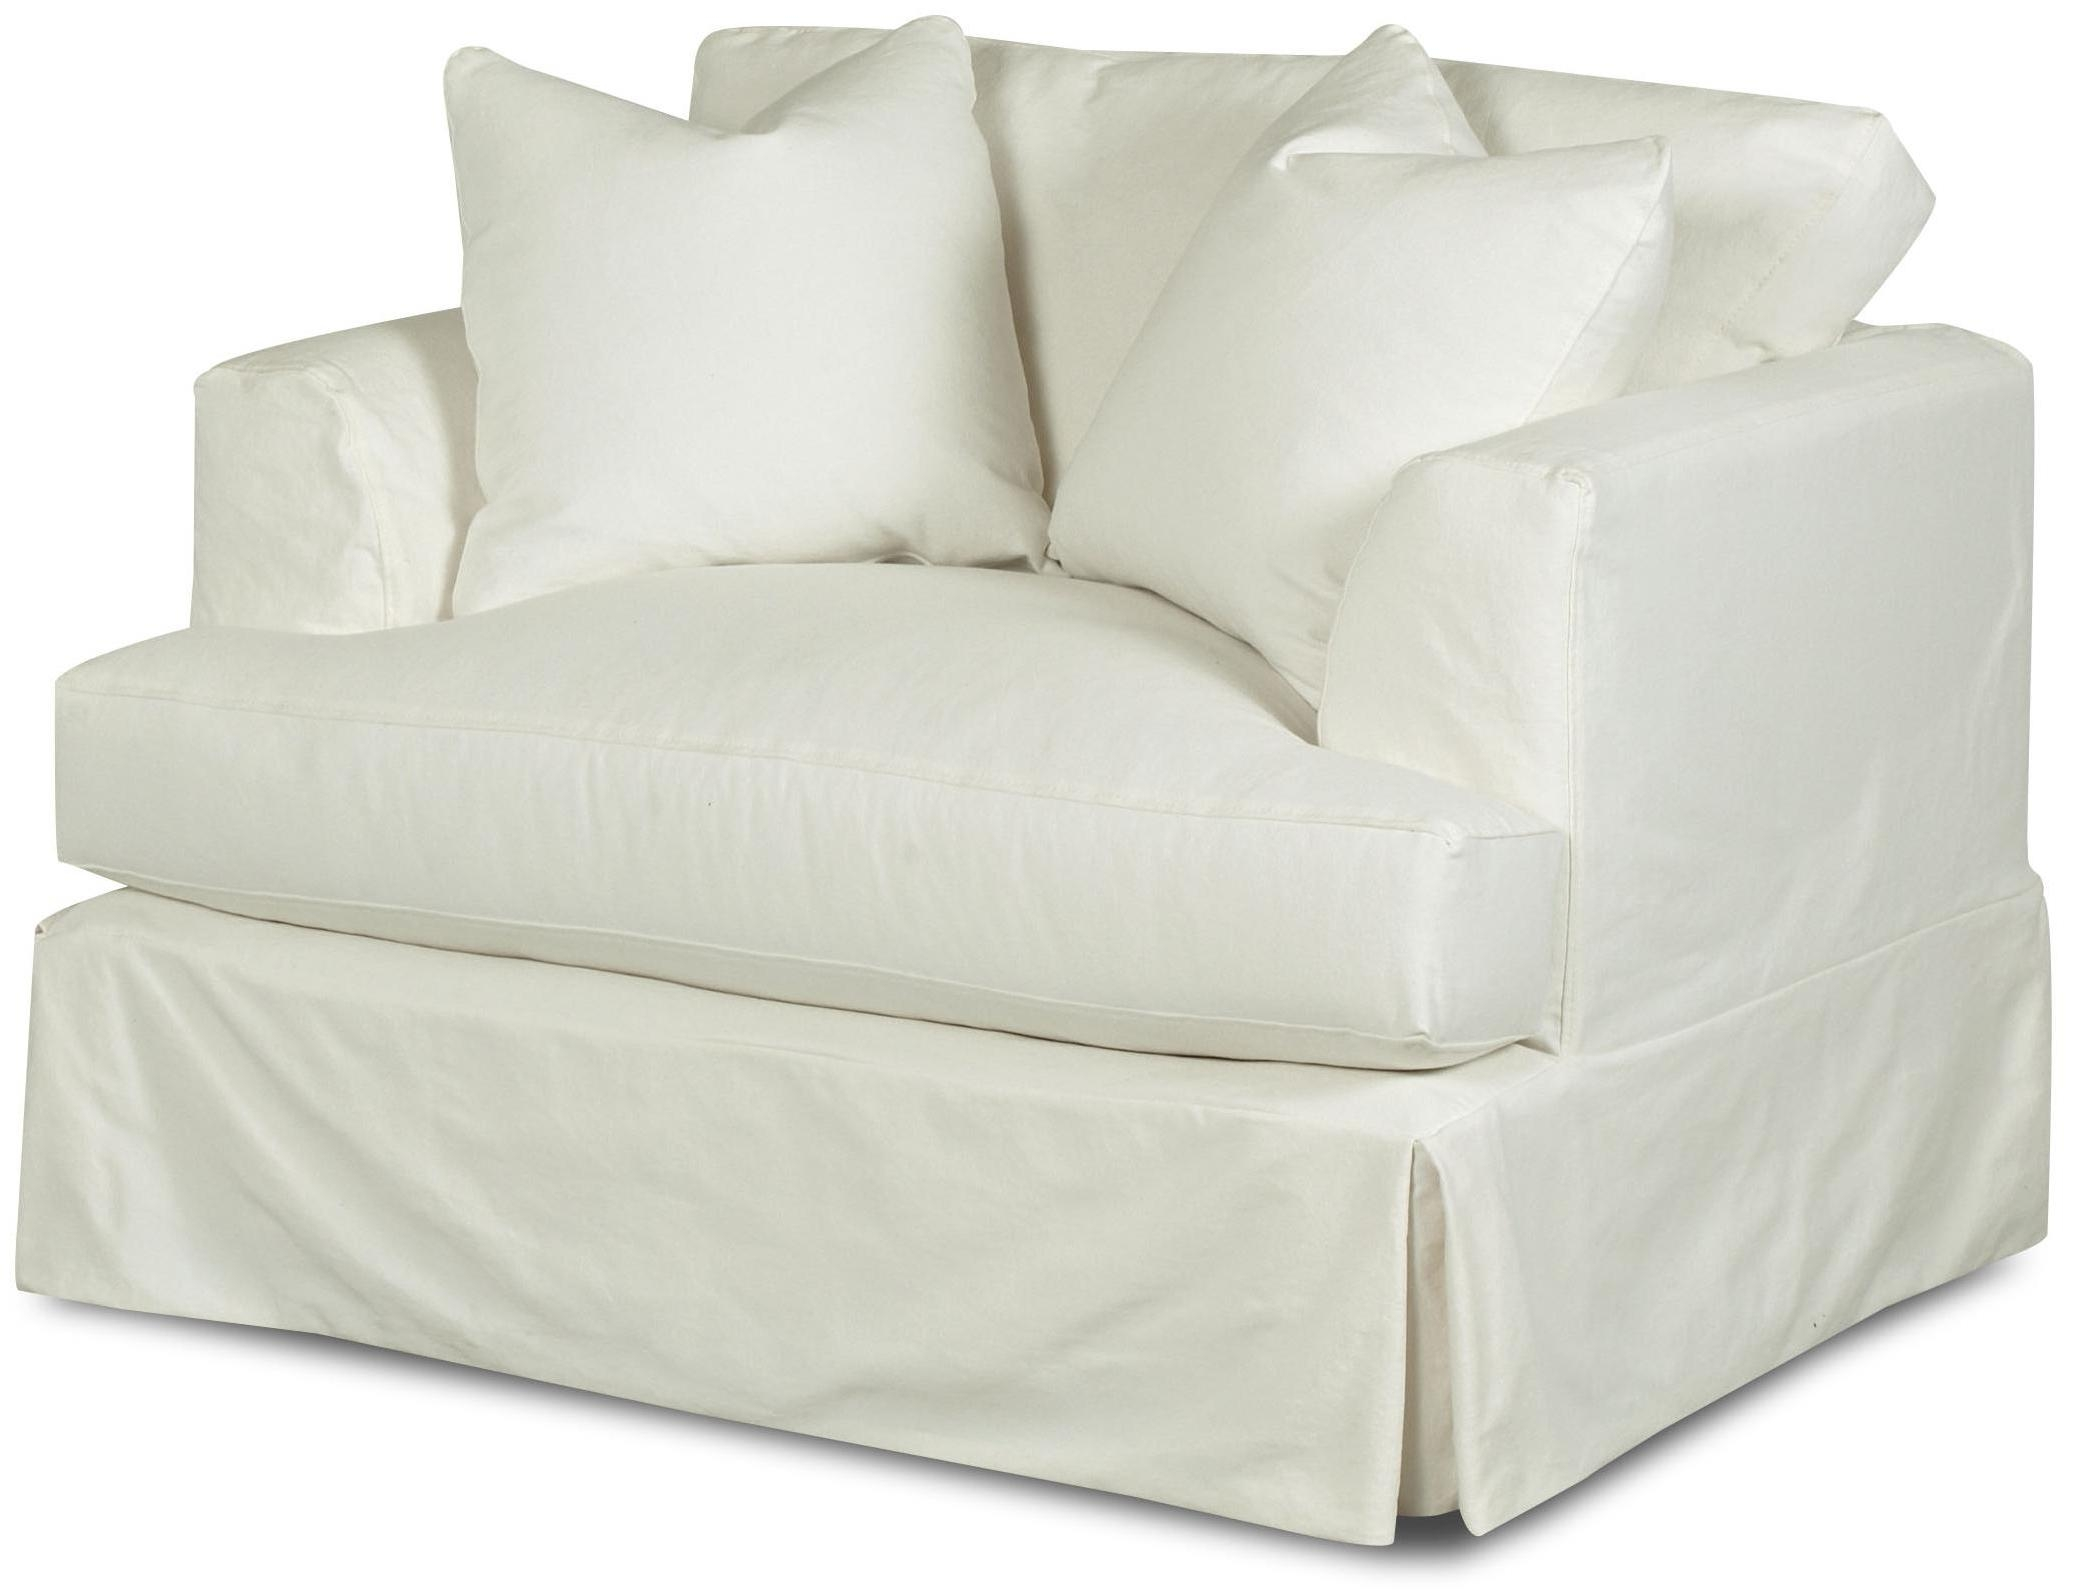 Ideas: Jcpenney Slipcovers | Couch Cover Walmart | Couch Seat With Regard To Individual Couch Seat Cushion Covers (Image 8 of 20)